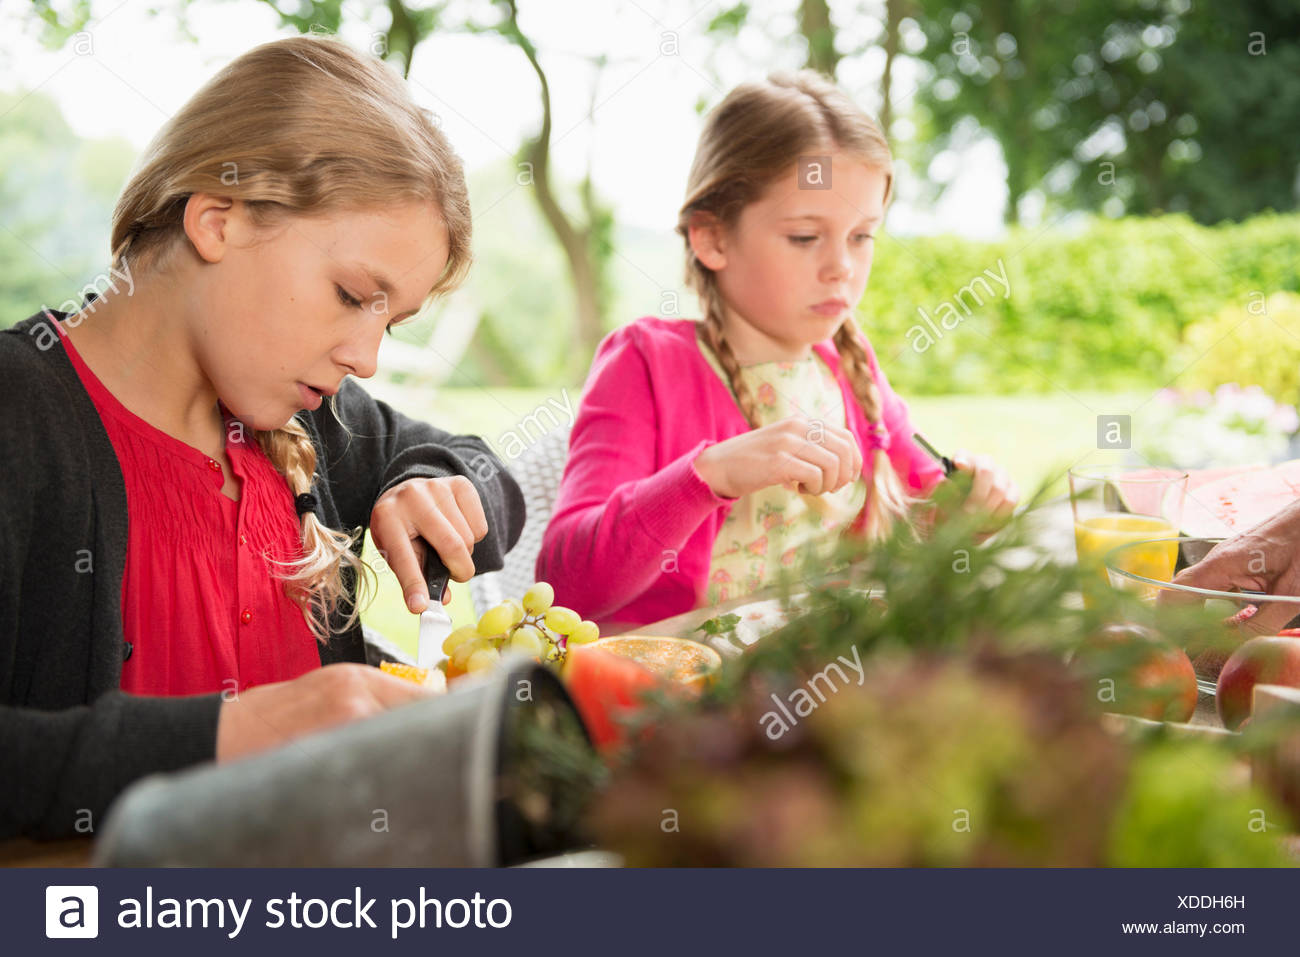 Two sisters at patio table slicing fresh fruit - Stock Image